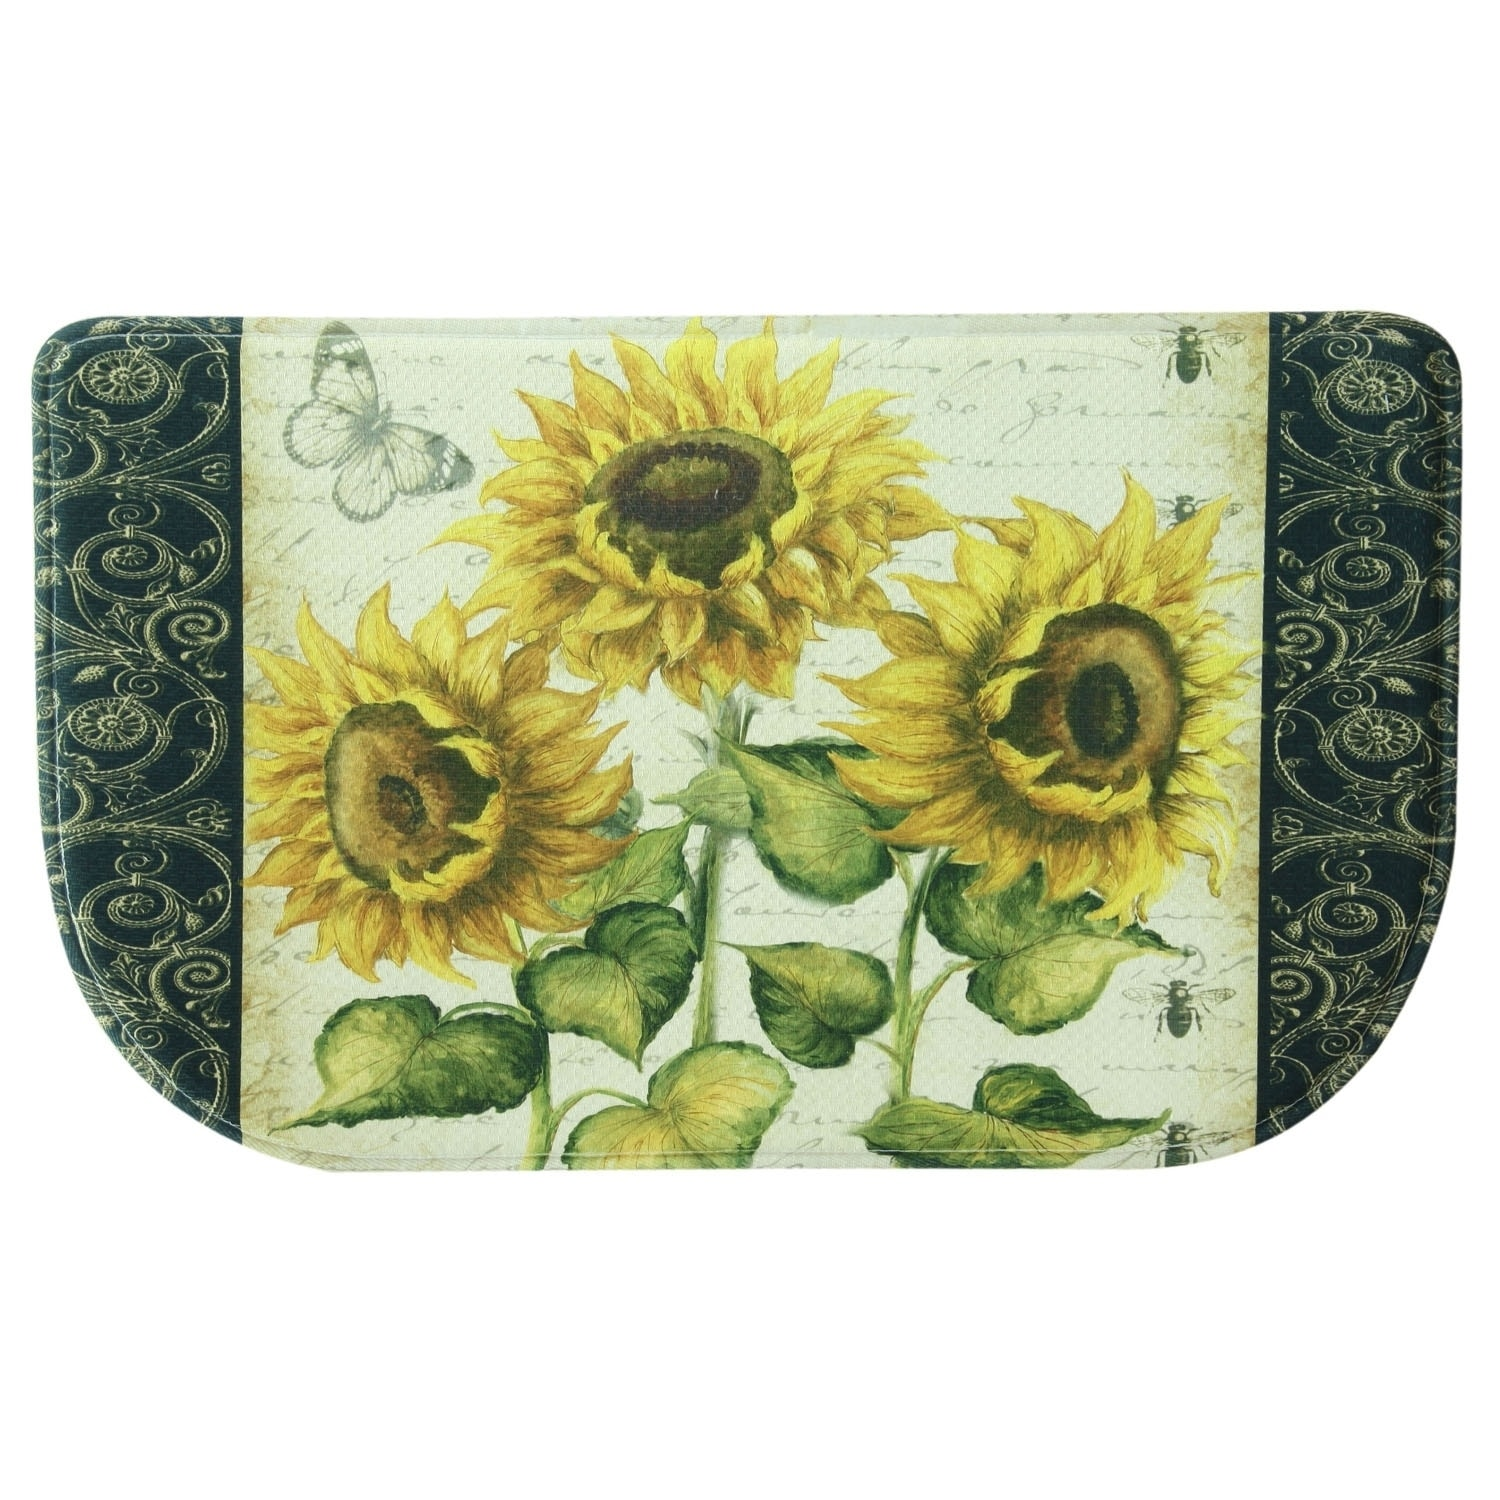 Printed memory foam french Sunflower kitchen rug by Bacova 1 6